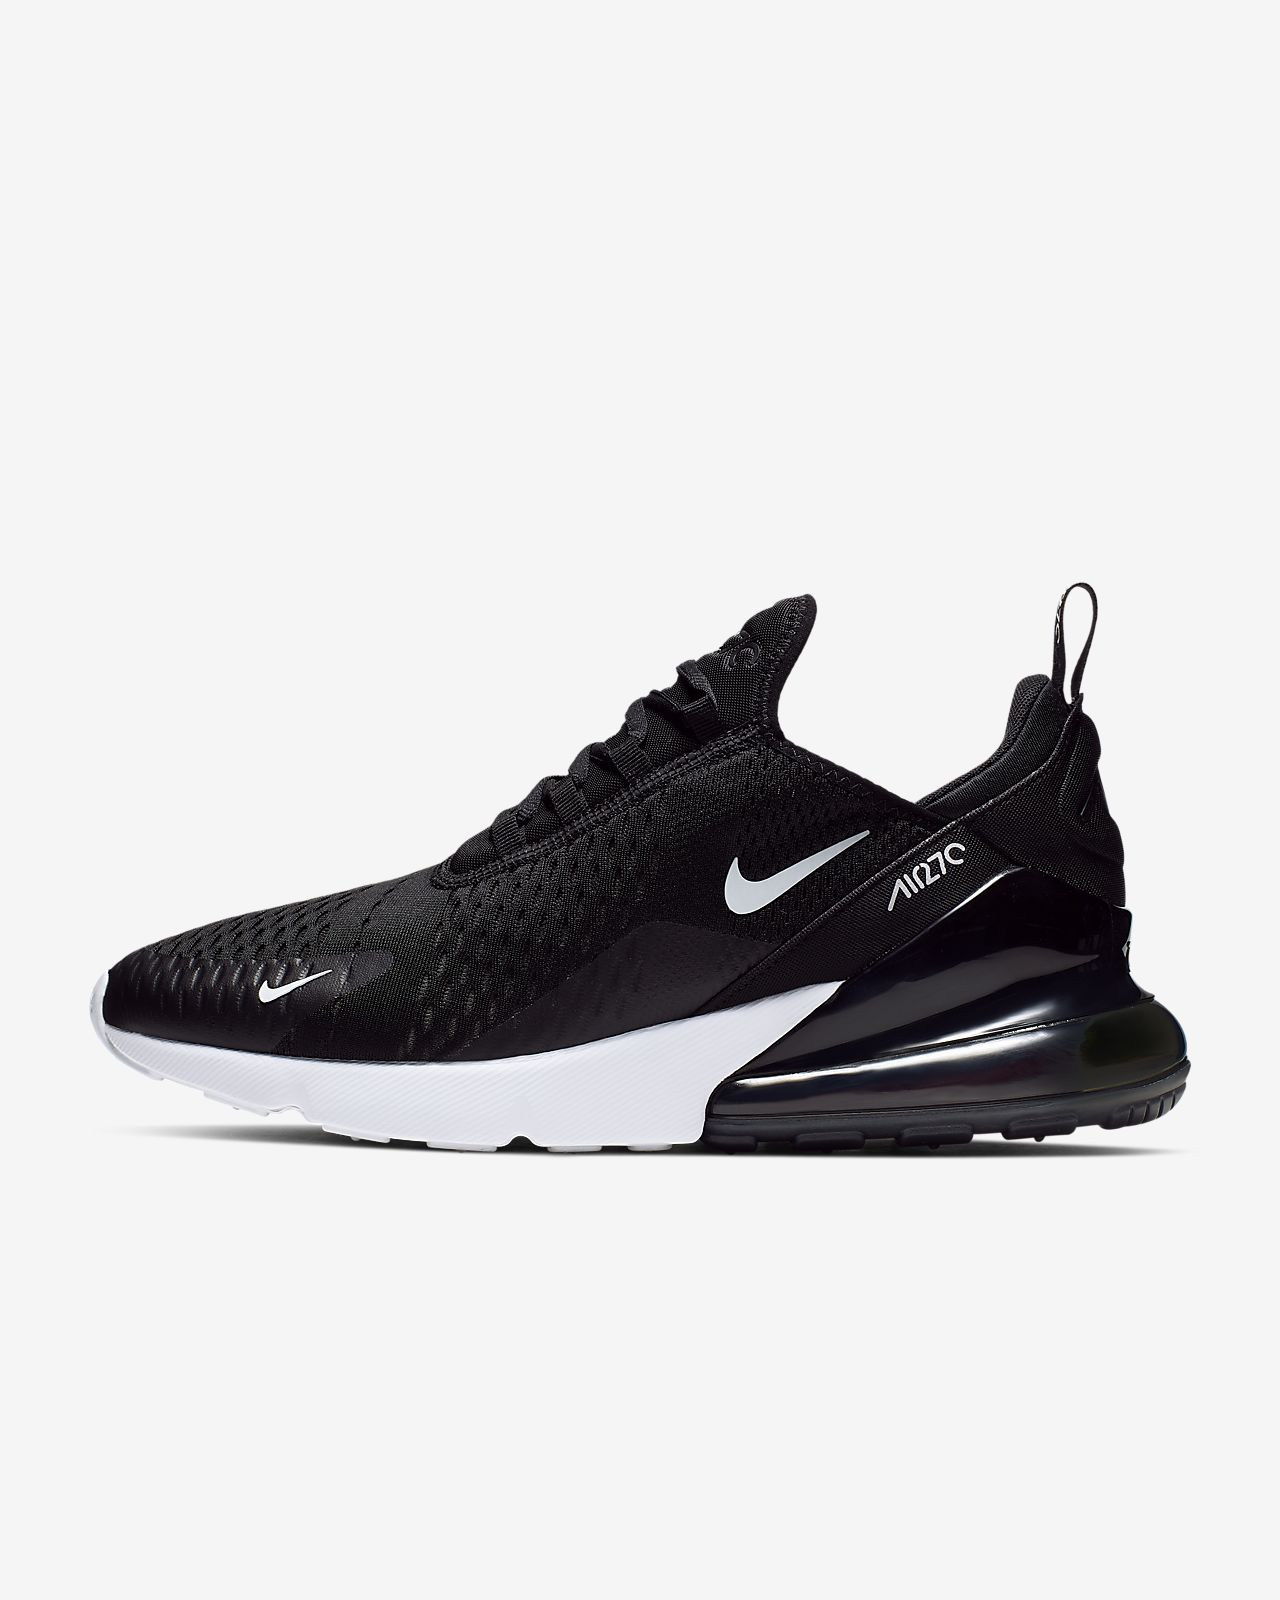 53f04b4dc2d4 Nike Air Max 270 Men s Shoe. Nike.com LU